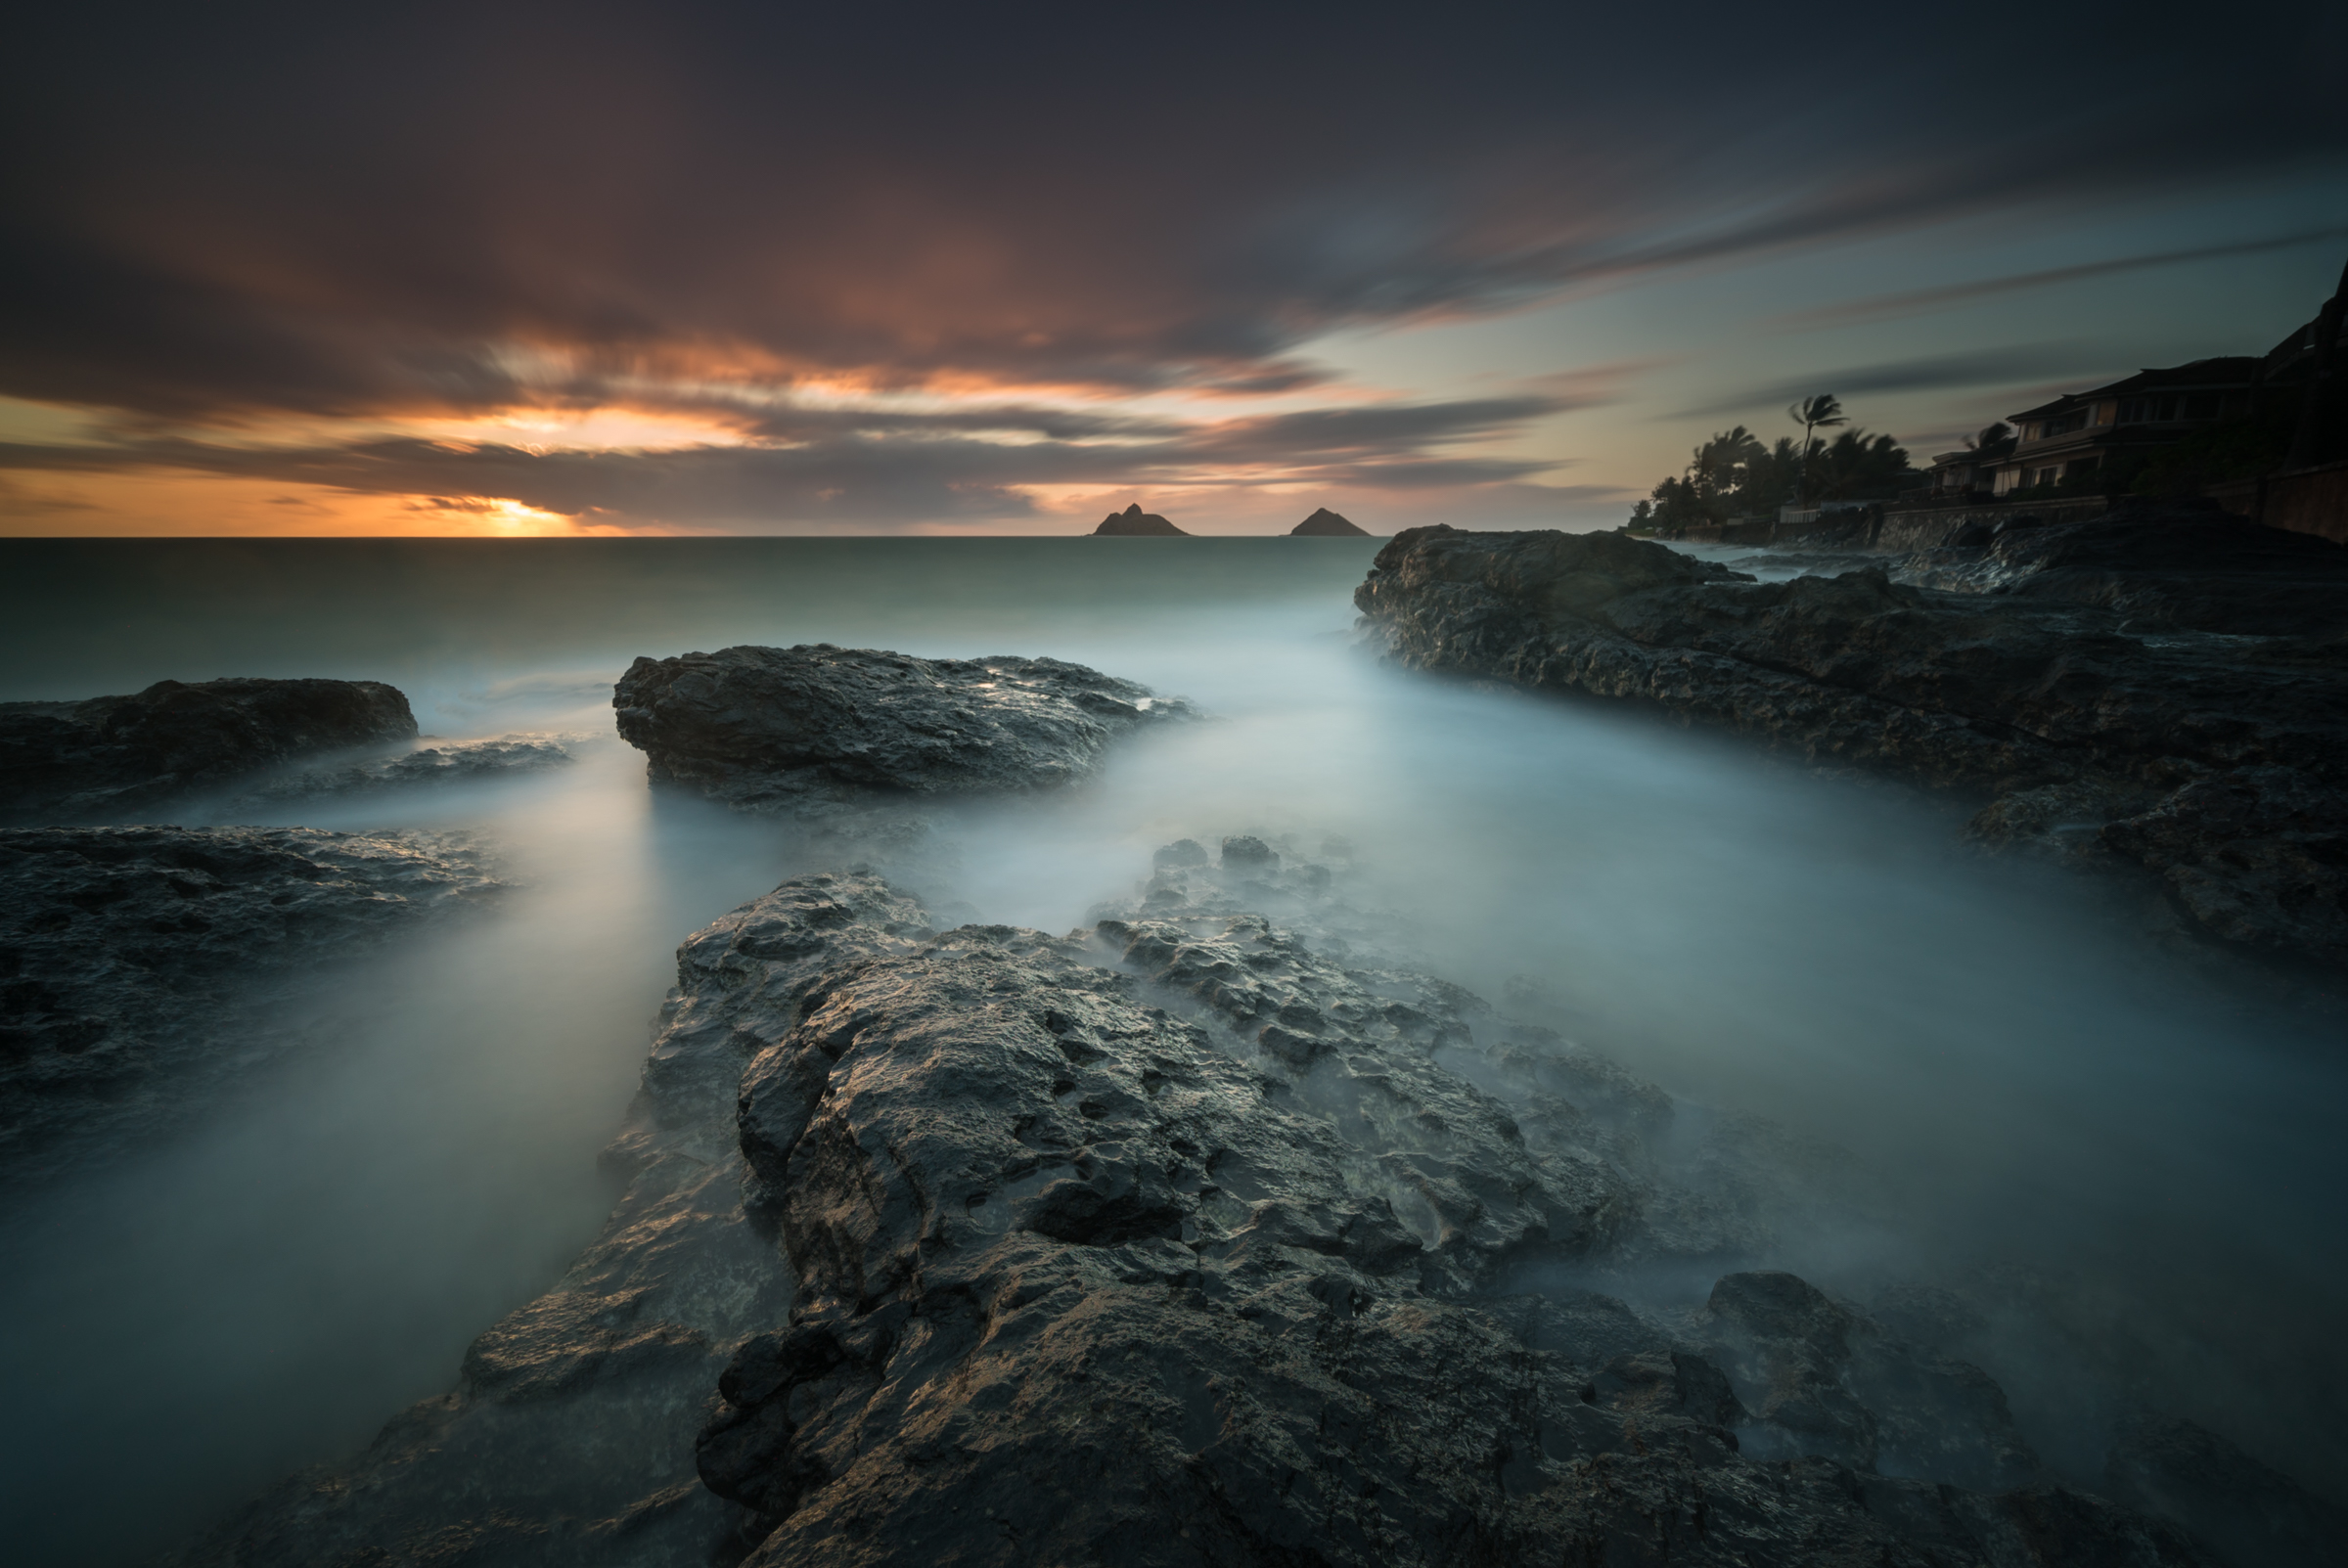 Sunrise at Lanakai Oahu, Hawaii Stacked Lee Big Stopper &3 stop hard grad Sony A7S II |  242 sec. |  f/8  |  ISO 50  |  Sony 16-35mm f/4 Edited in Lightroom & Photoshop CC 2015  Copyright 2016 Ryan Sakamoto, All rights reserved